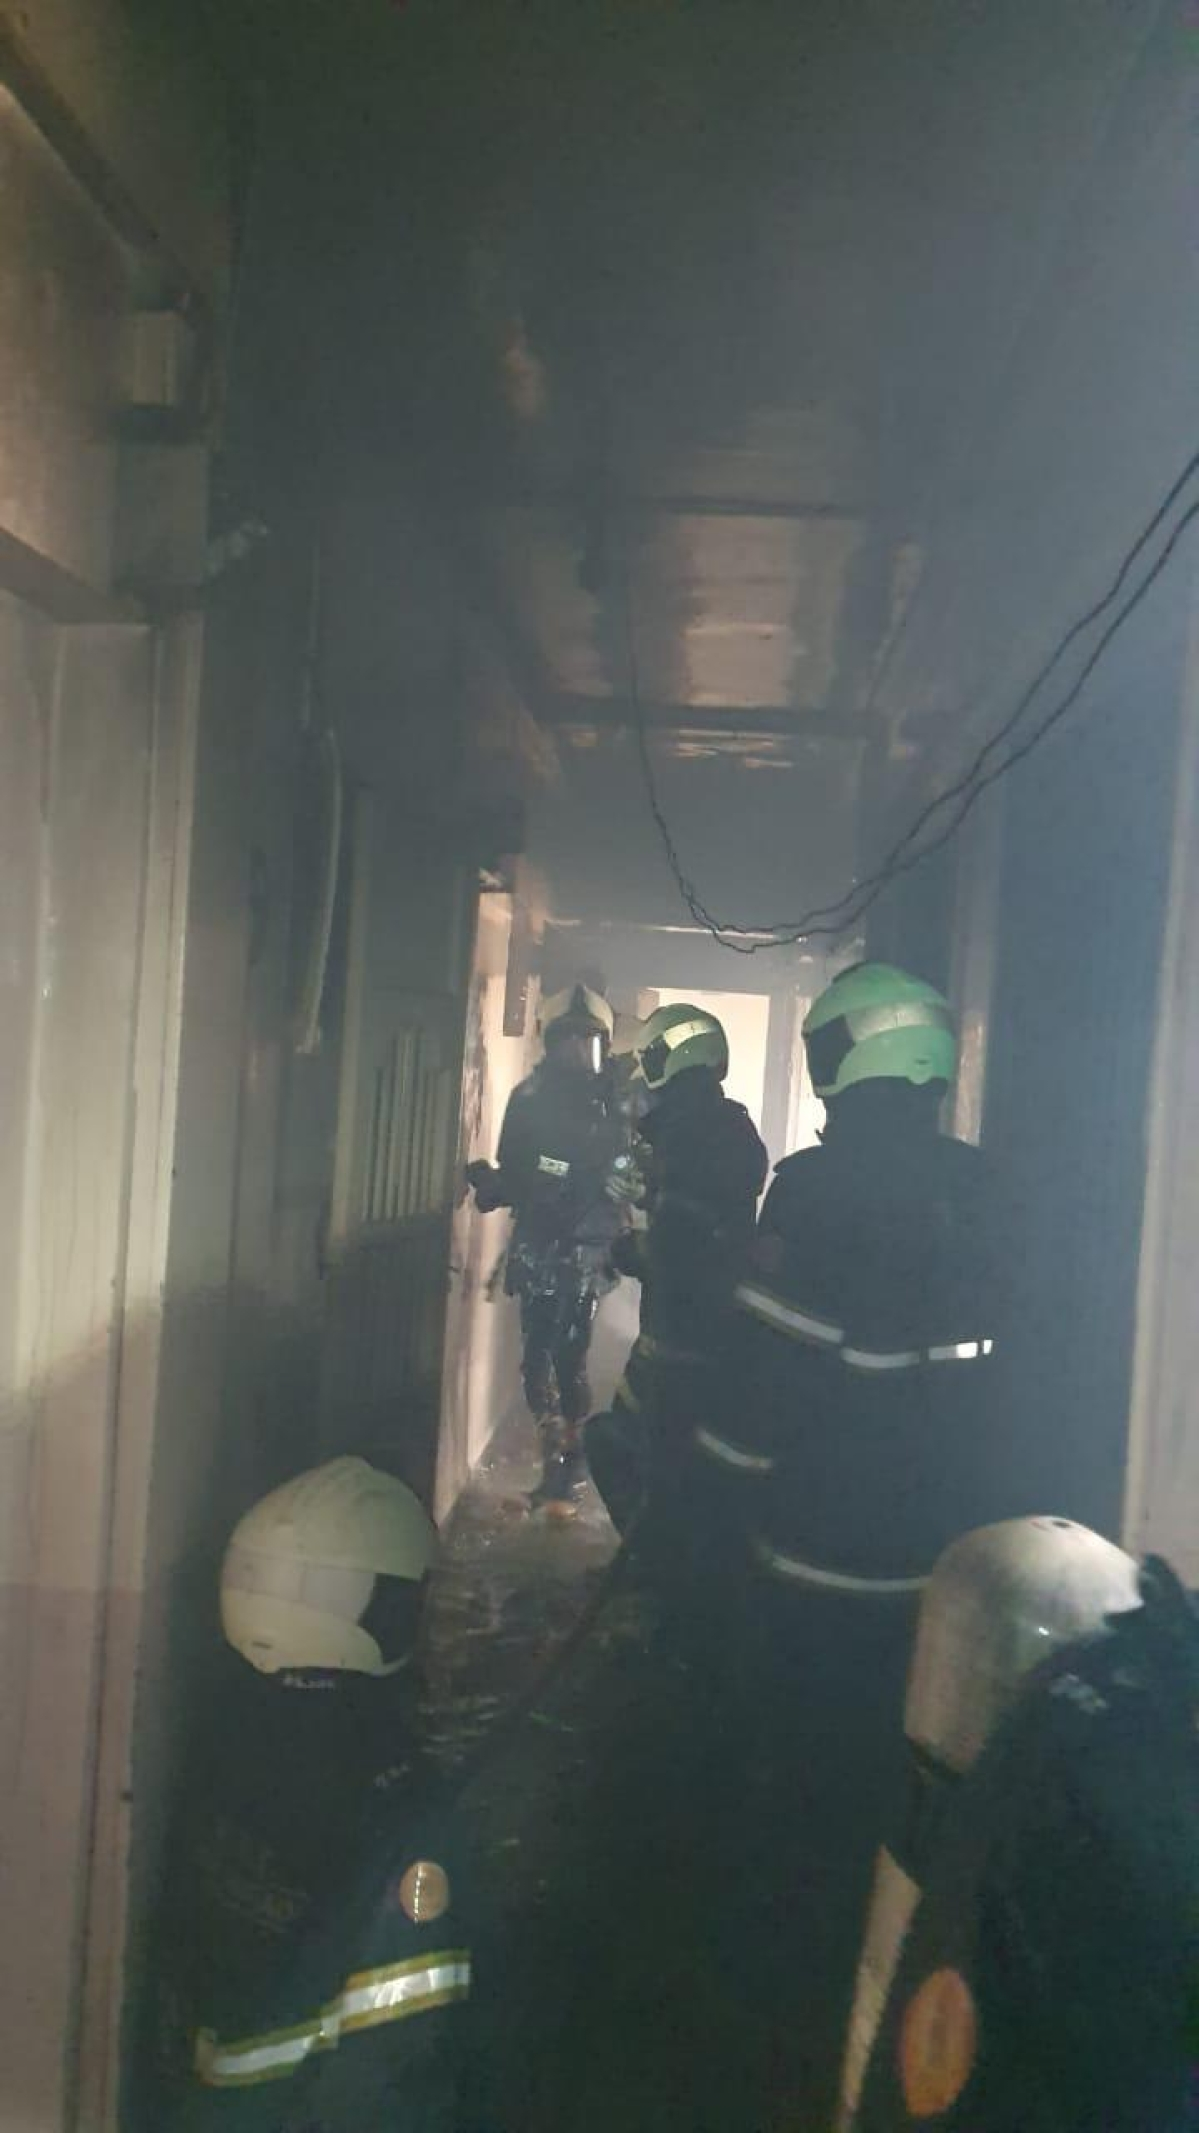 Mumbai: Fire breaks out at a residential building in Mazgaon area